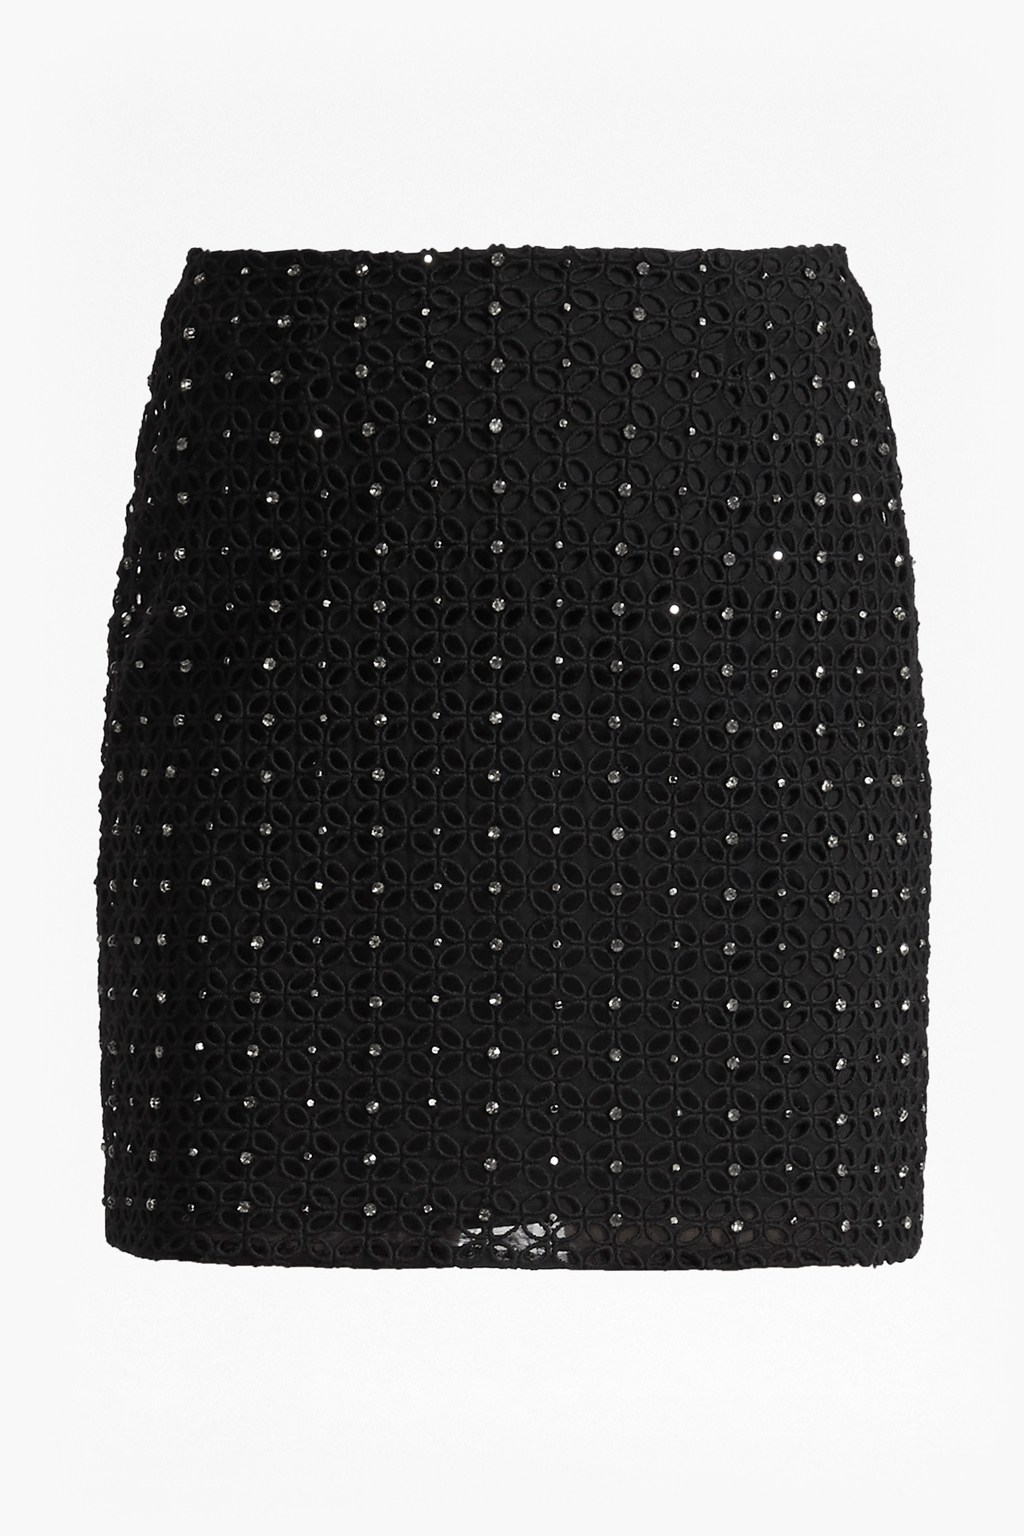 Can recommend Short white mini skirt the